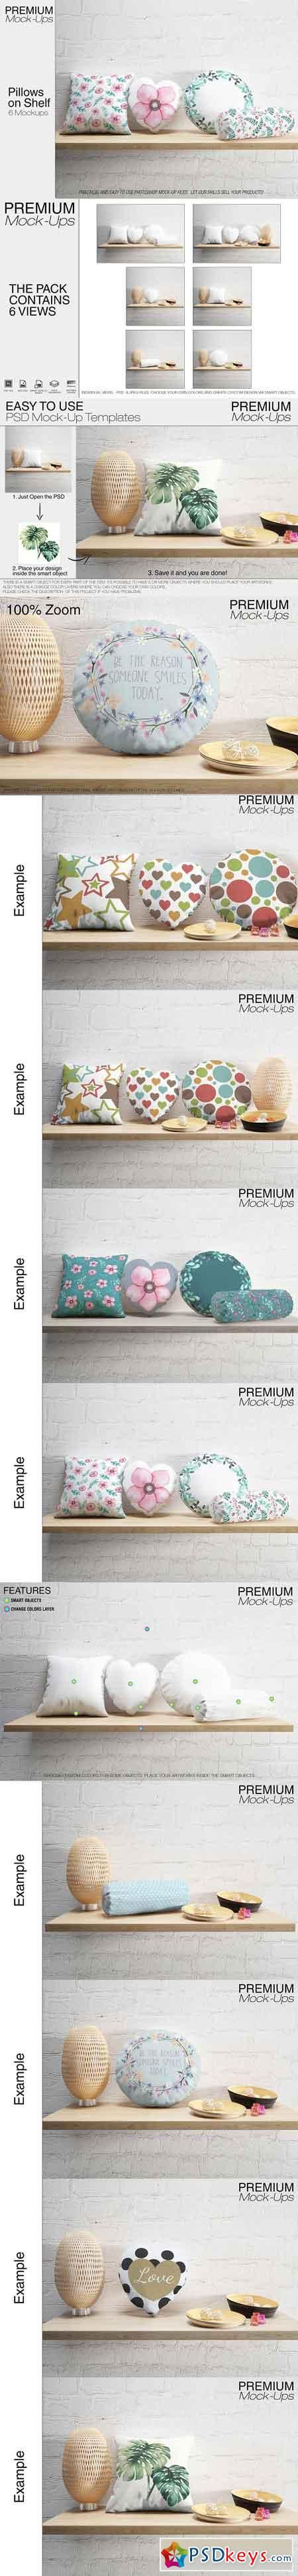 Pillows on Shelf Set 2543435 | psd keys | Shelves, Mockup